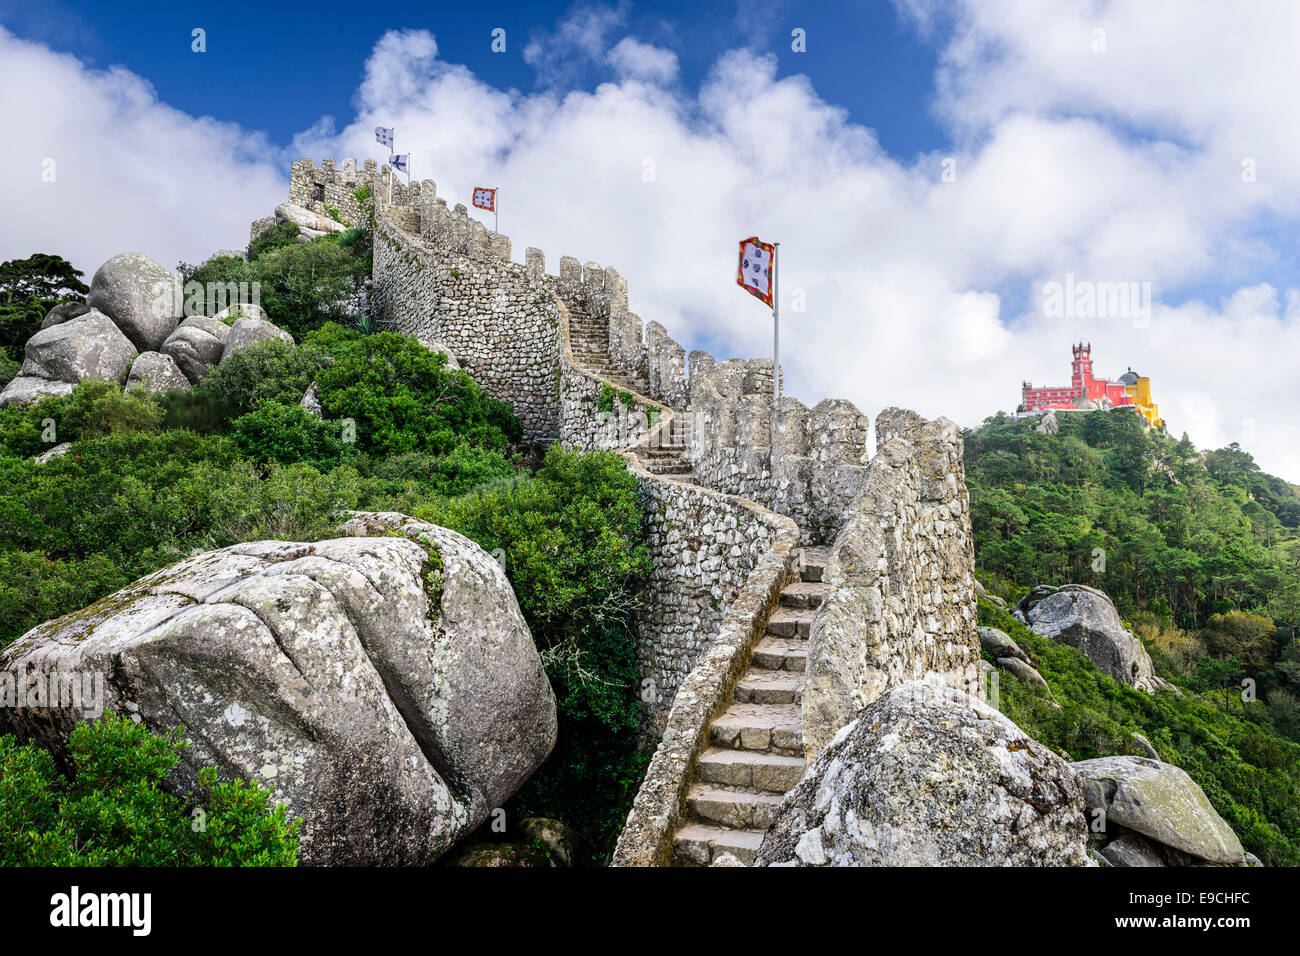 Sintra, Portugal at the Moorish Castle and Pena Palace. Stock Photo